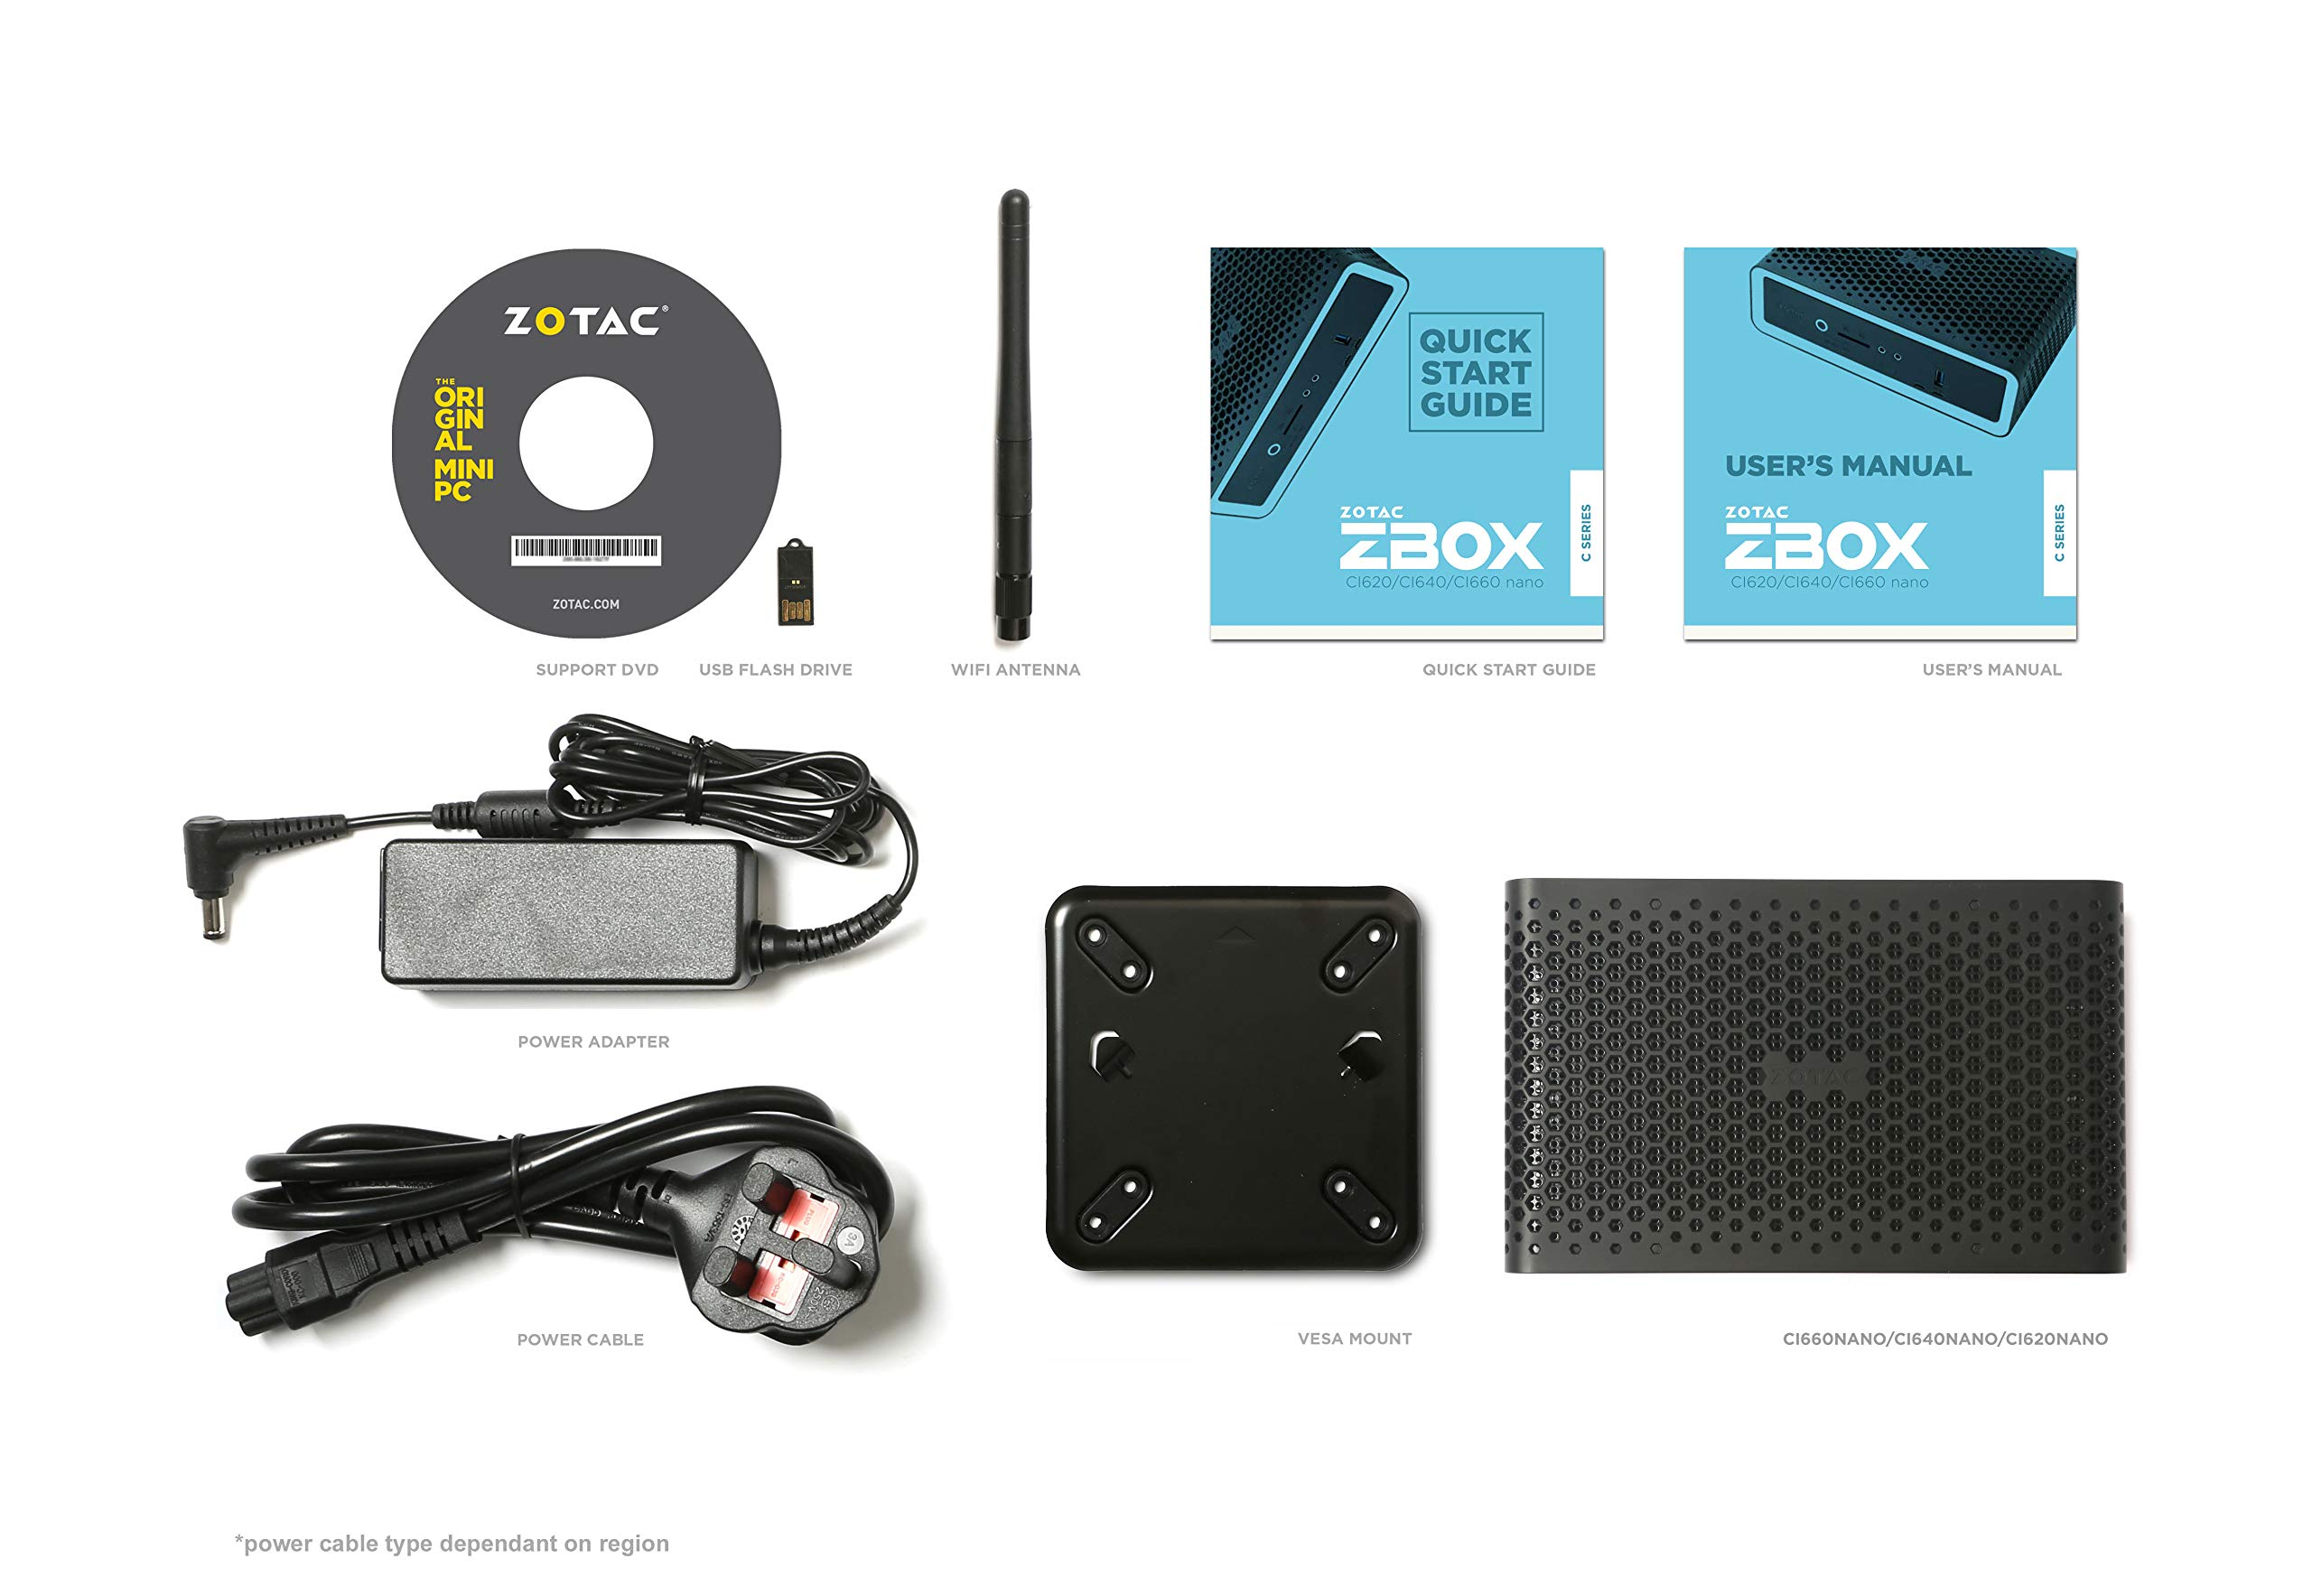 ZOTAC ZBOX CI620 Nano Plus Silent Mini PC 8th Gen Intel Core i3-8130U UHD 620 4GB DDR4/120GB SSD/No OS (ZBOX-CI620NANO-P-U) by ZOTAC (Image #4)